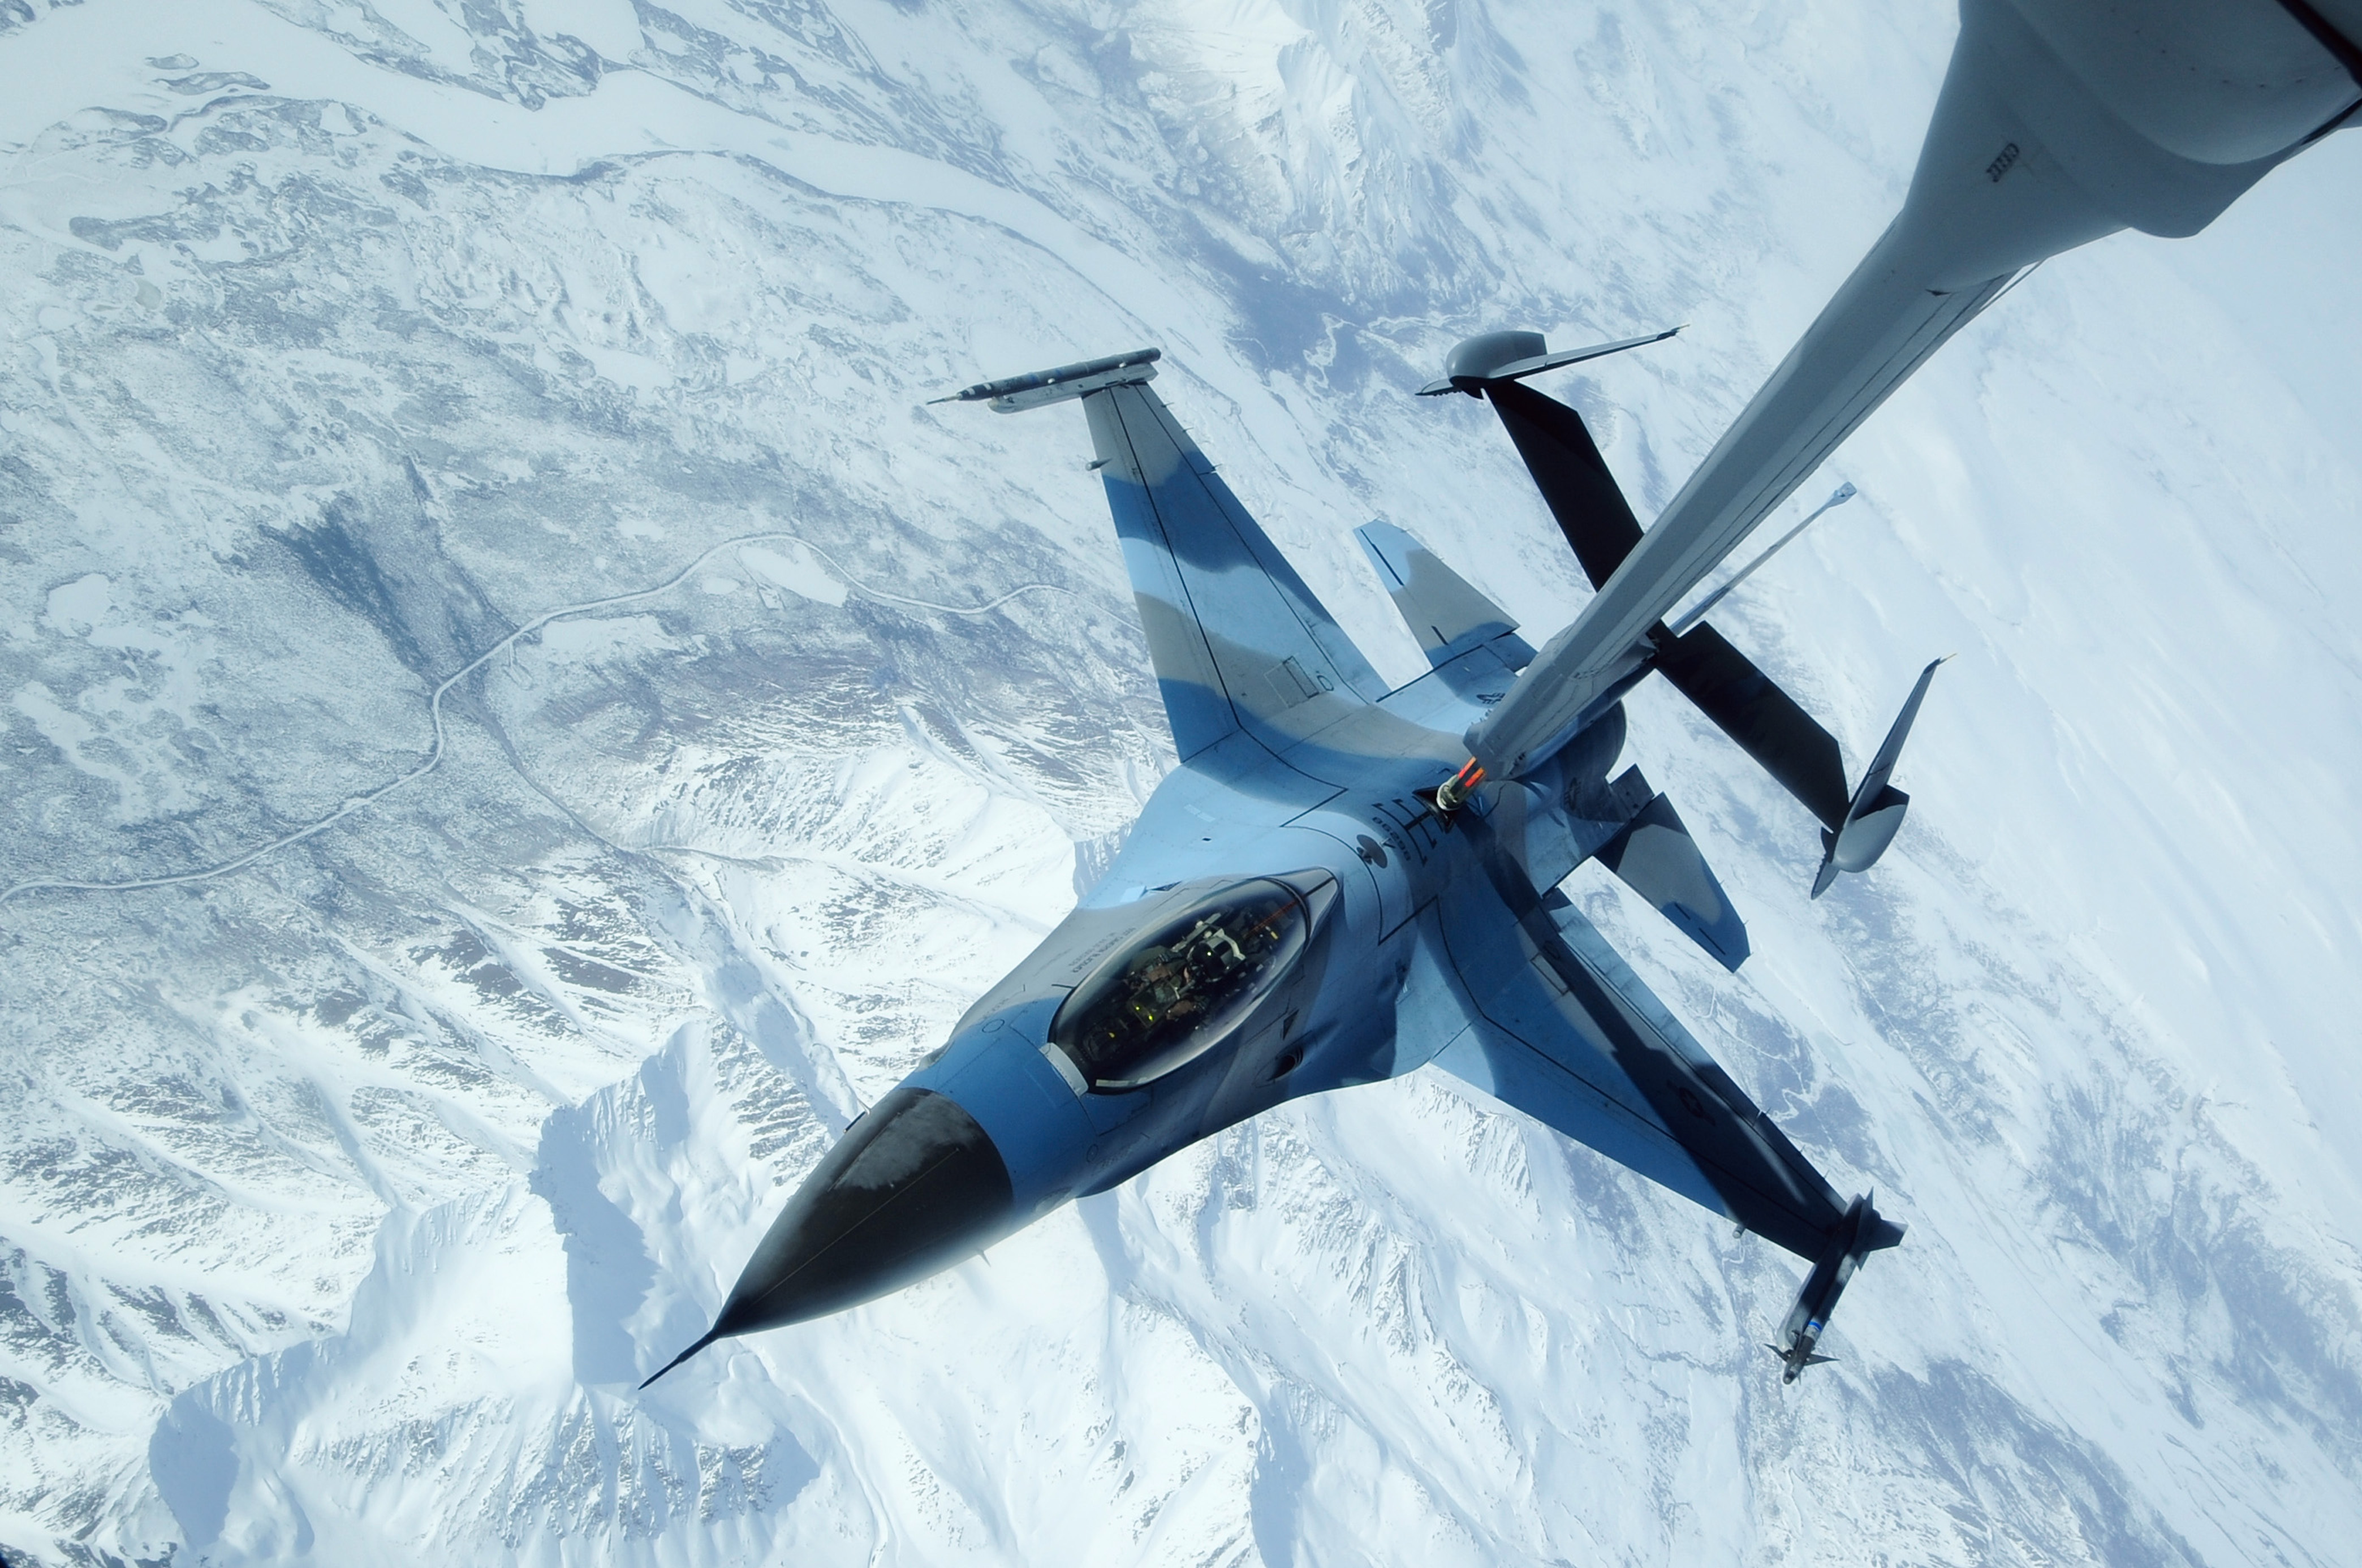 Stock Photo of a U.S. Air Force Jet Being Refueled.